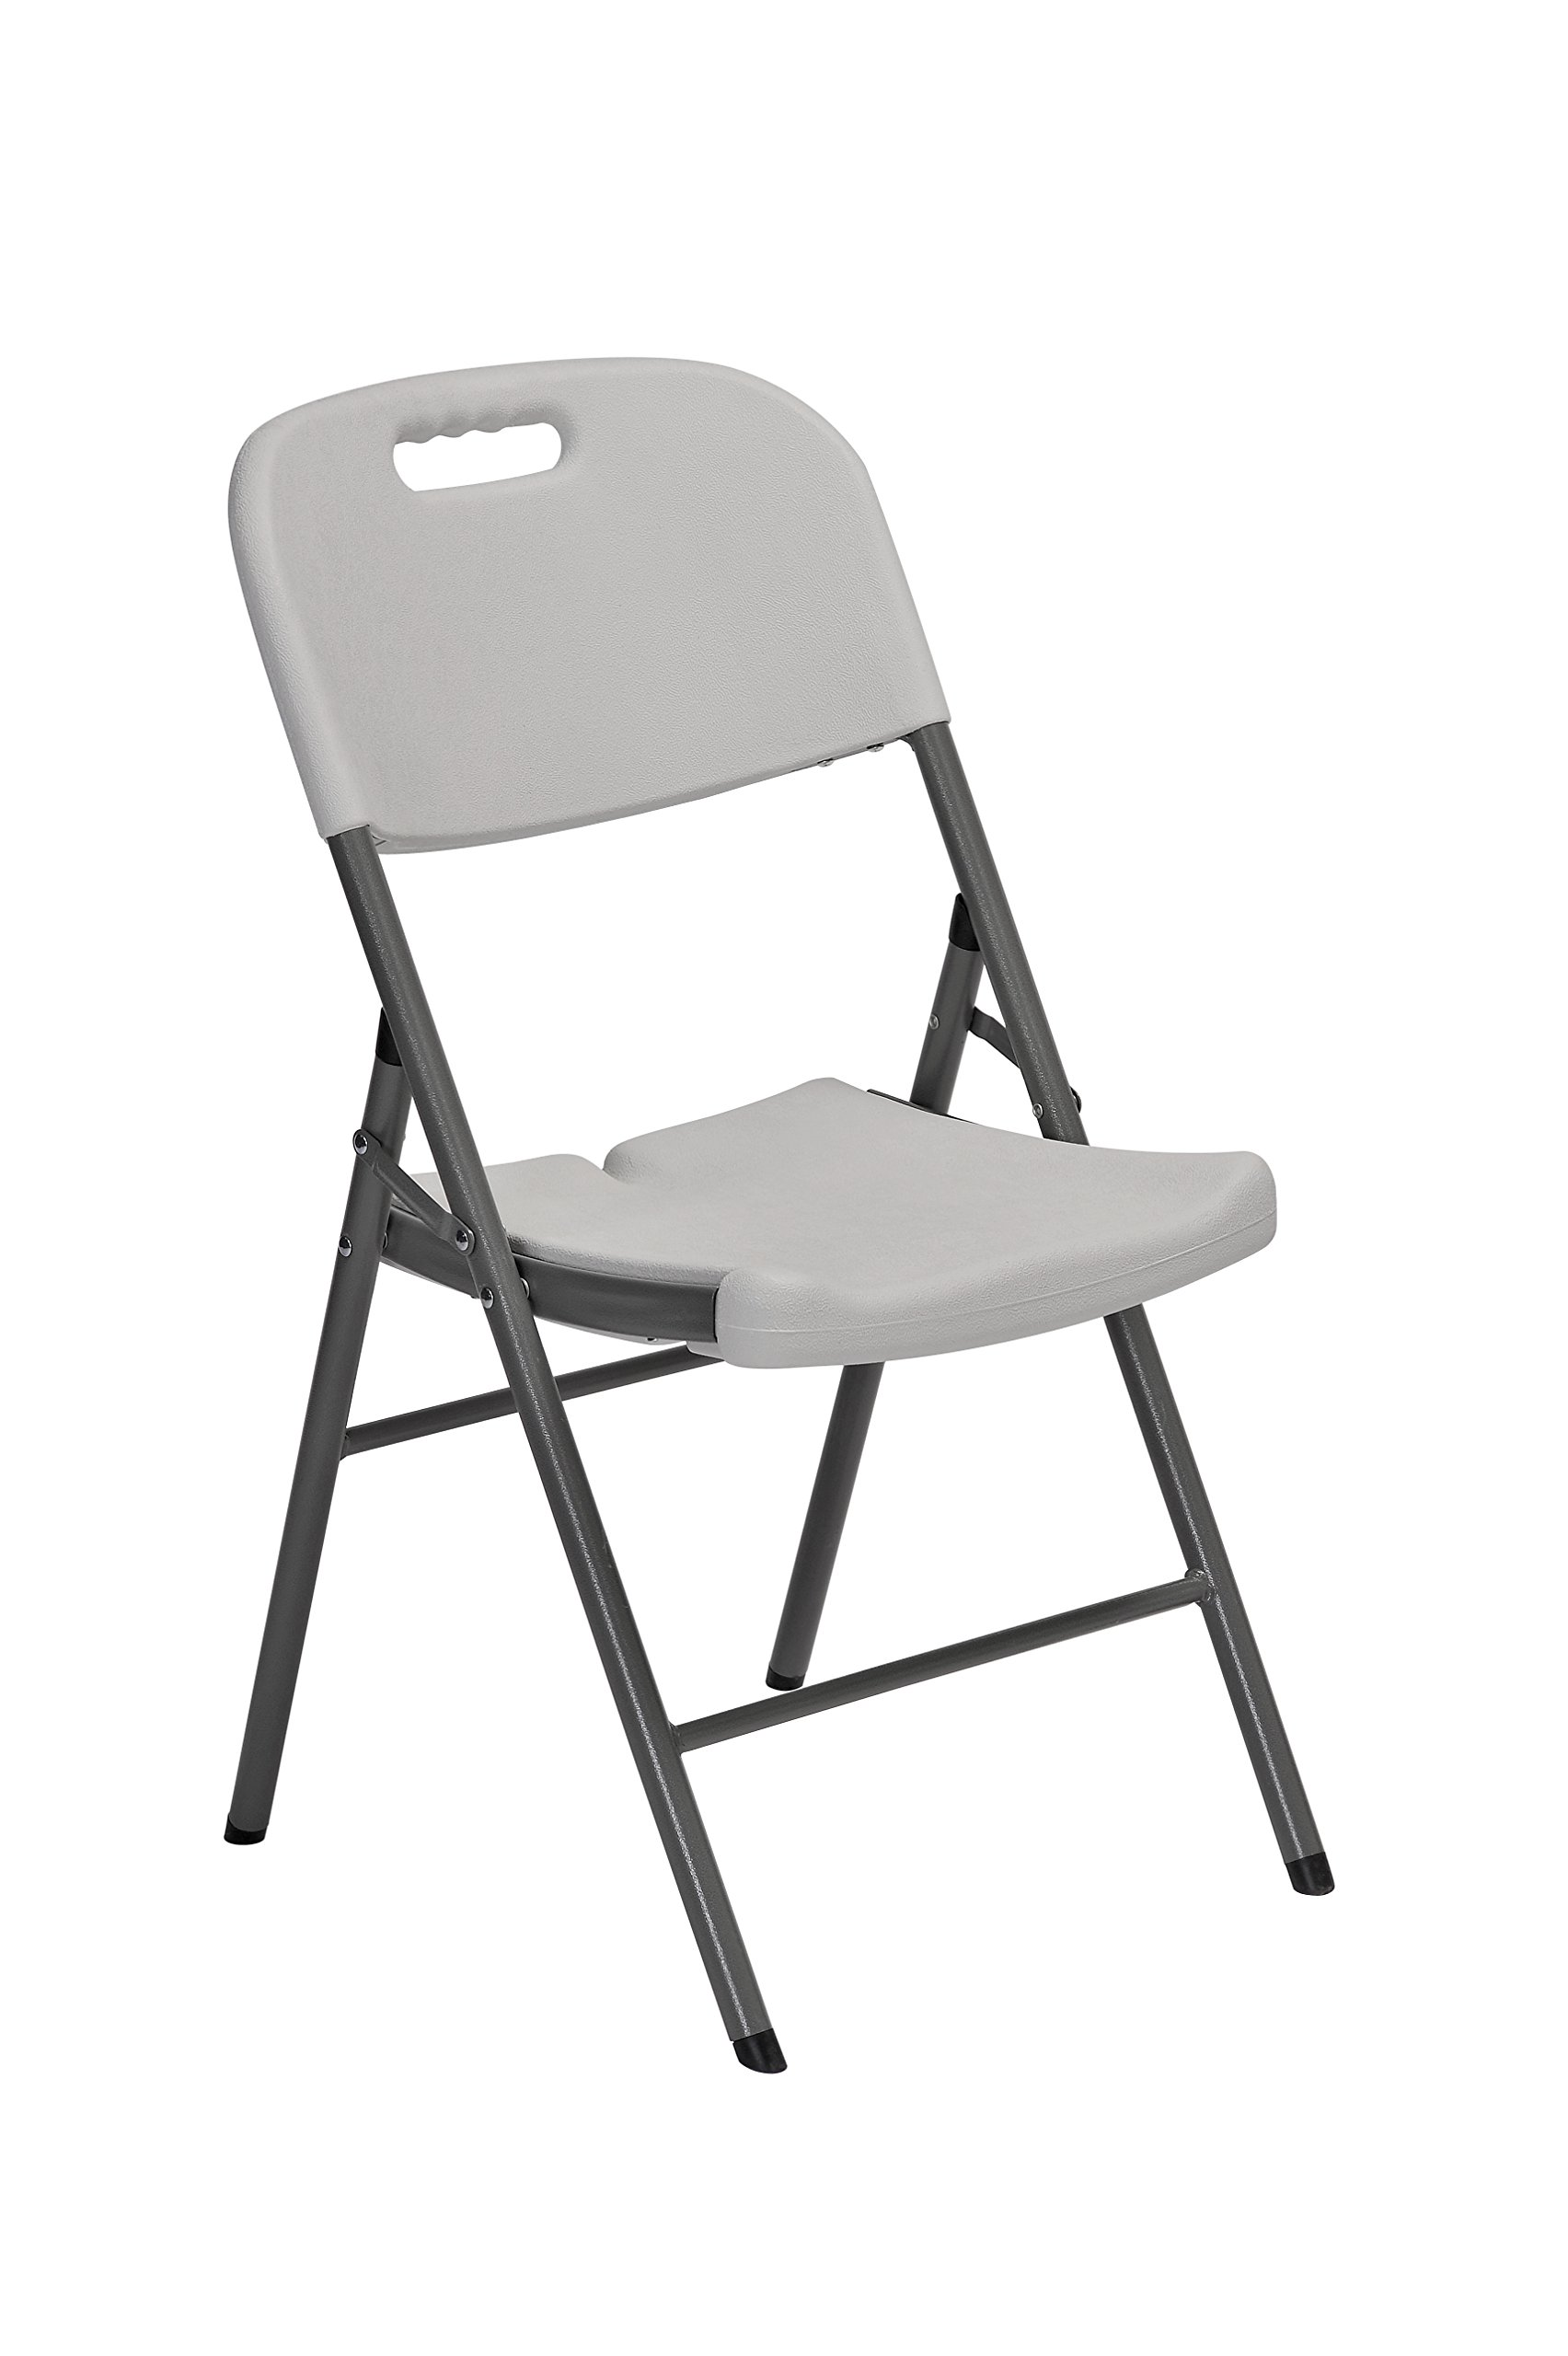 Sandusky Lee FPC Resin Folding Chair with Molded Seat and